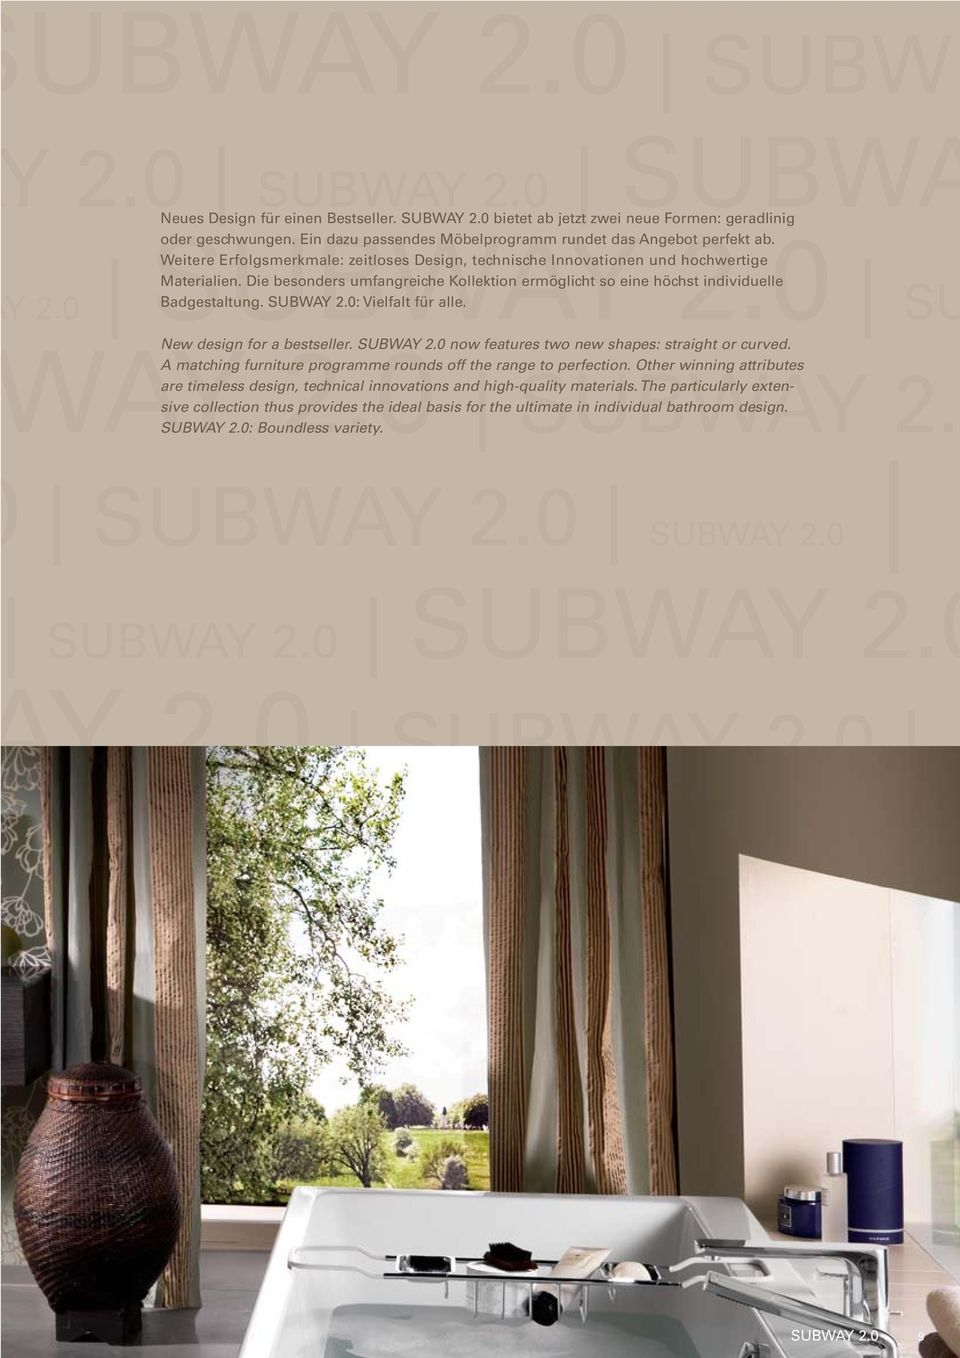 : Vielfalt für alle. SU AY 2.0 SUBWAY 2. New design for a bestseller. now features two new shapes: straight or curved. A matching furniture programme rounds off the range to perfection.